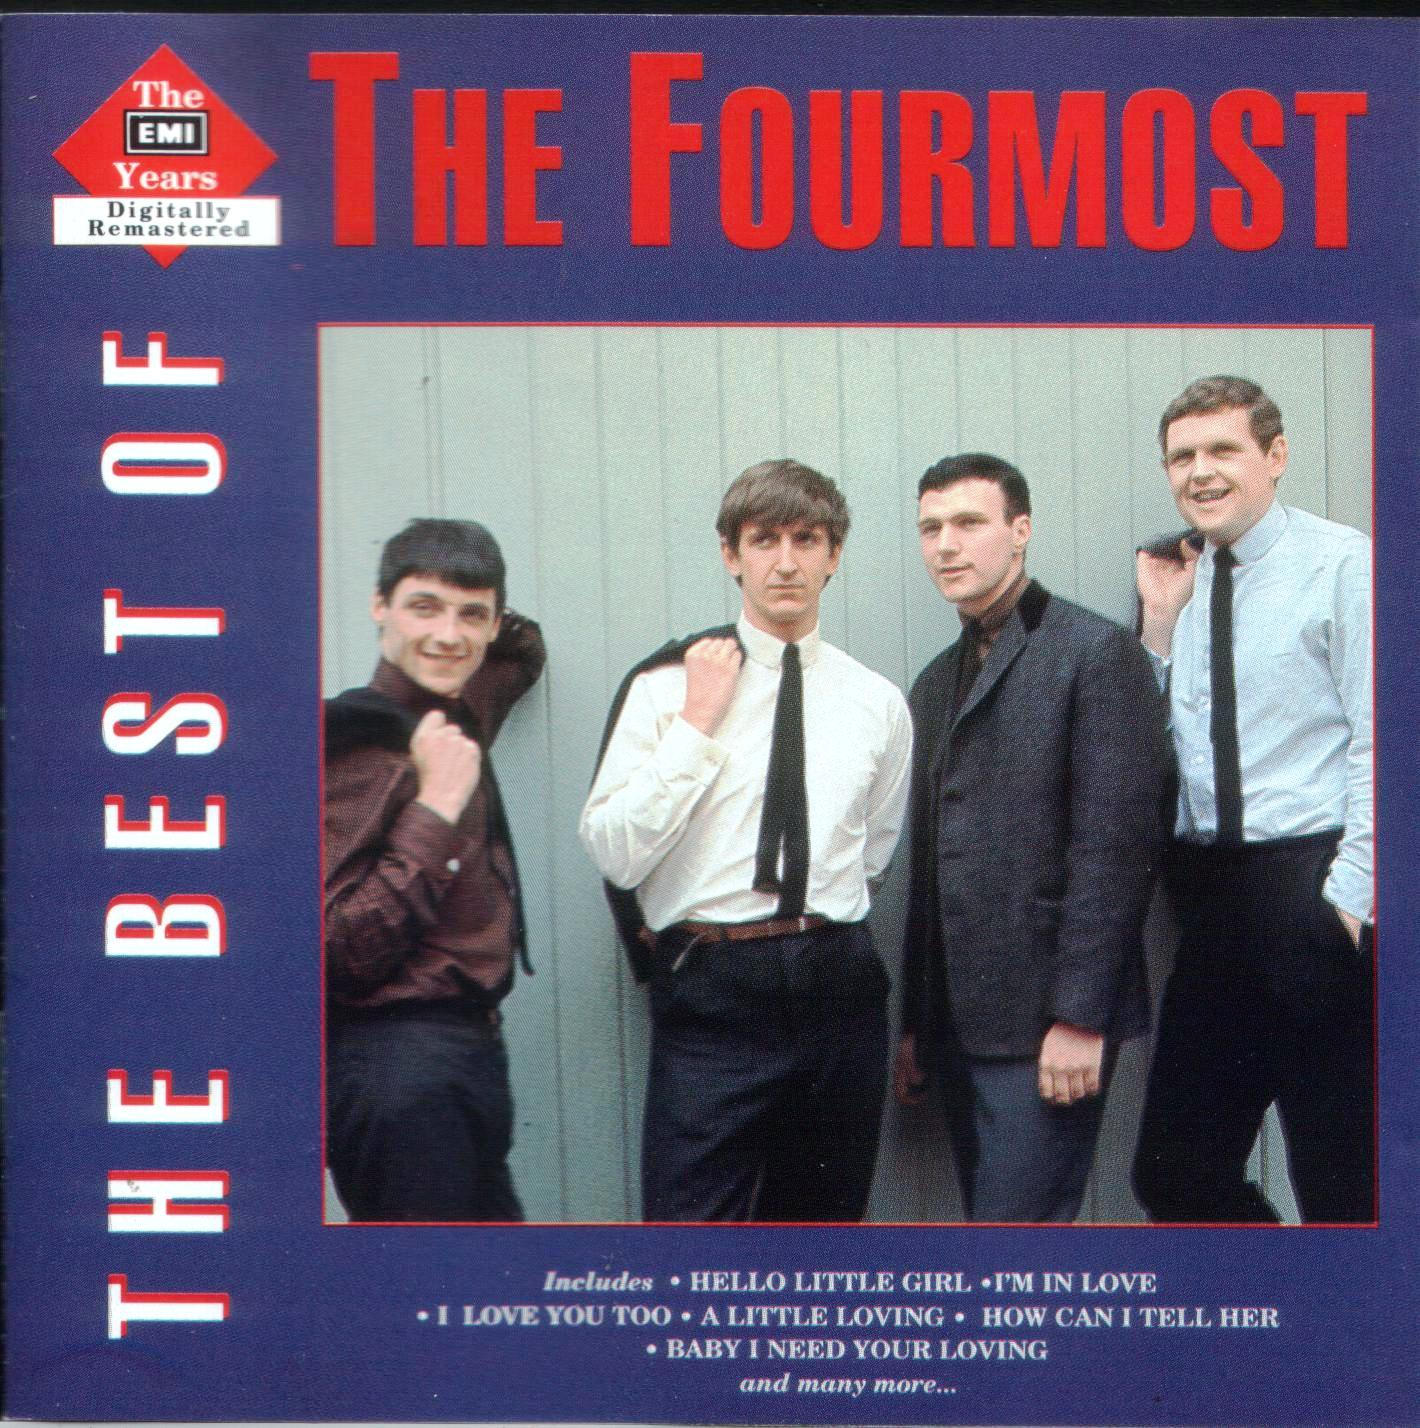 http://2.bp.blogspot.com/-noFC7UDXdws/TmmW9sNKRSI/AAAAAAAAB5A/dtFmUBsFnQQ/s1600/FOURMOST-THE+BEST+OF+THE+EMI+YEARS-Front+cover.jpg